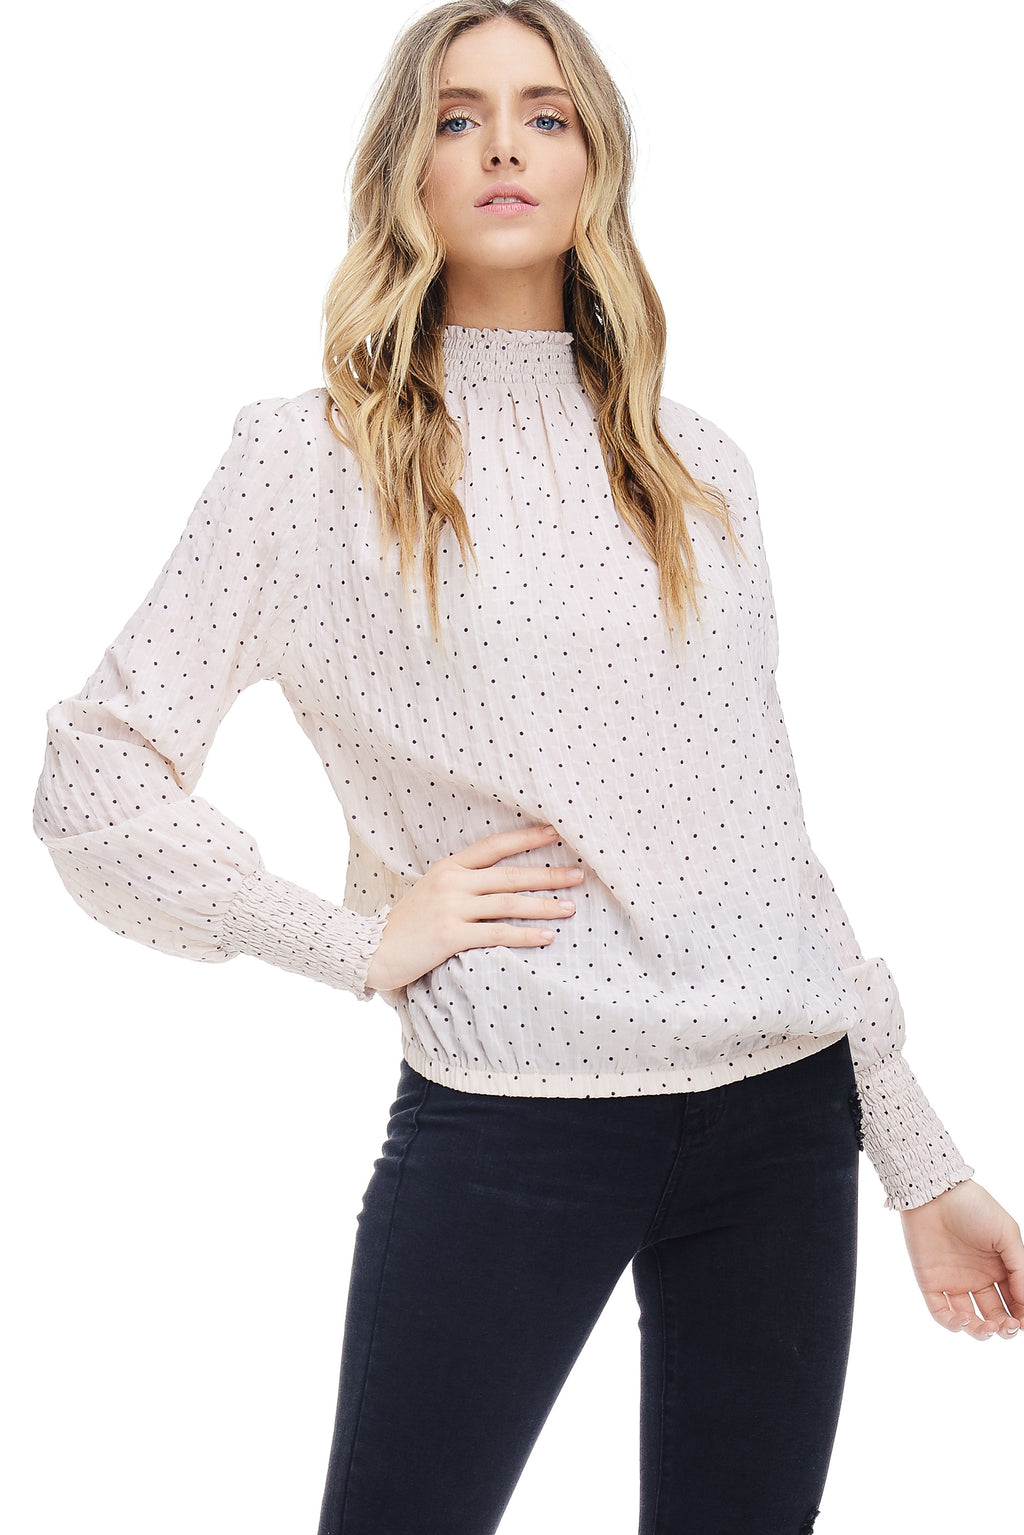 W18-089 Polka Dot Sheer Blouse